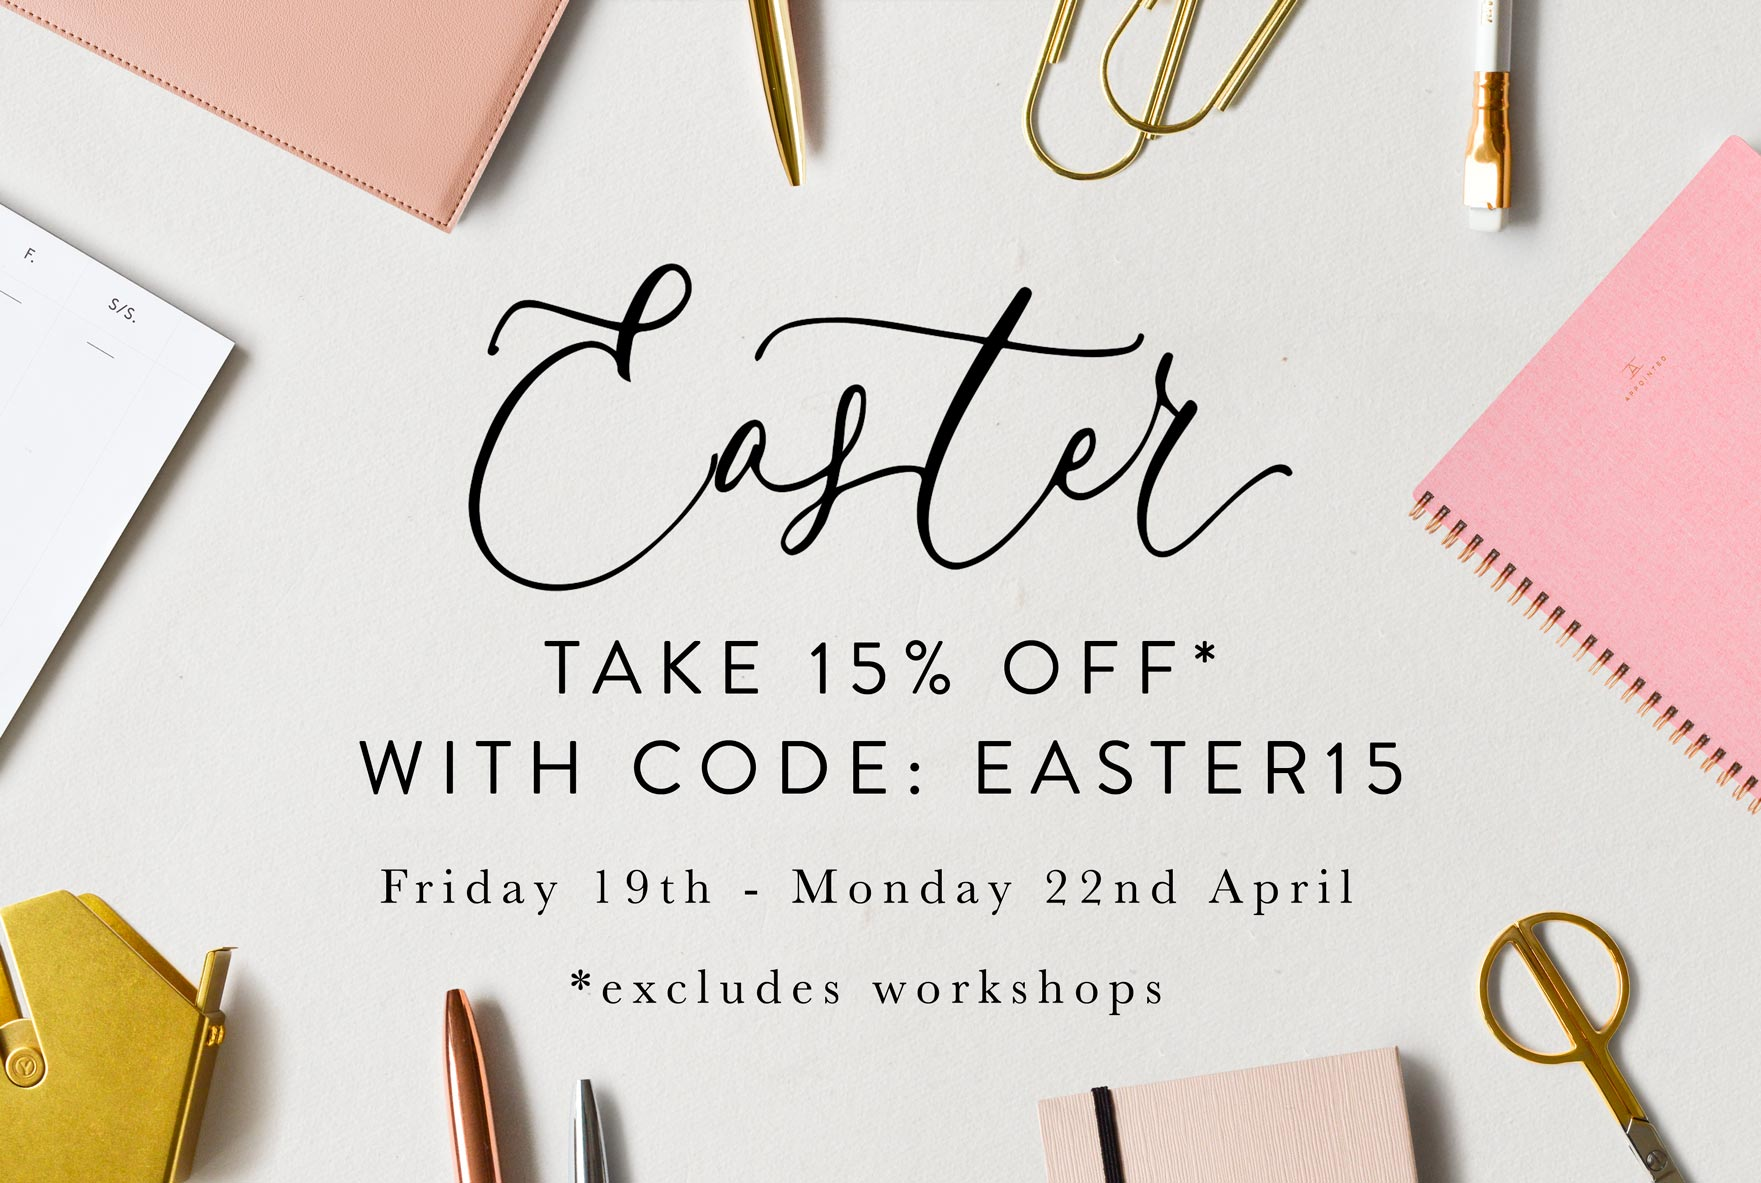 Quill London | Luxury Stationery & Modern Calligraphy Supplies | Gifts For Stationery Lovers | EASTER TREAT 15% OFF